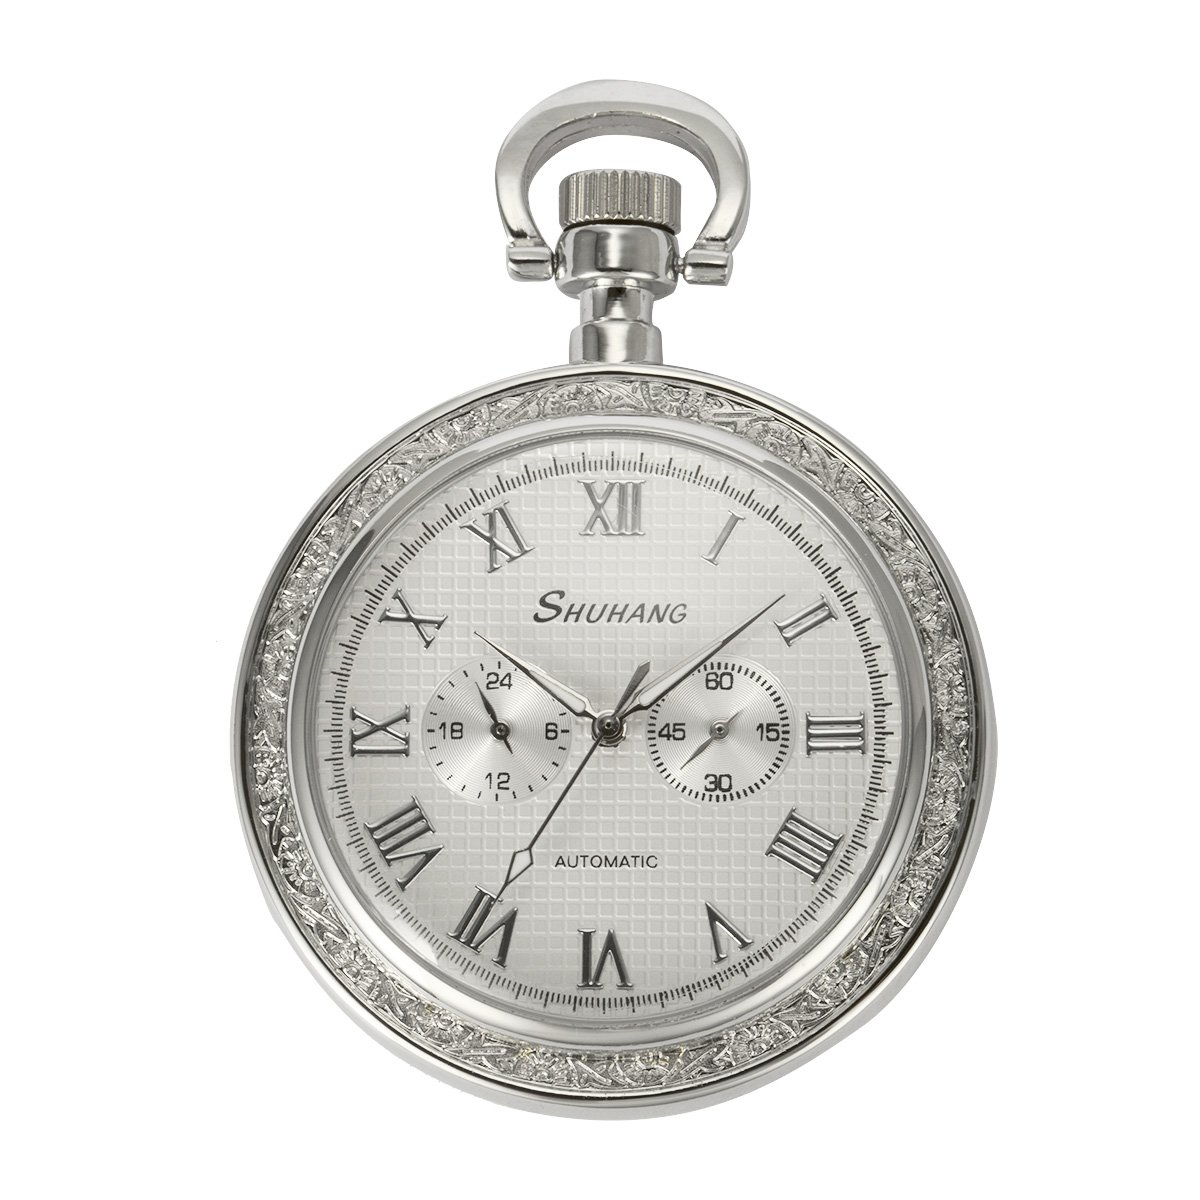 ManChDa Silver Open Face 2 Sub-Dail 24-Hour Small Second Hand Machanical Men Pocket Watch Roman Numerals